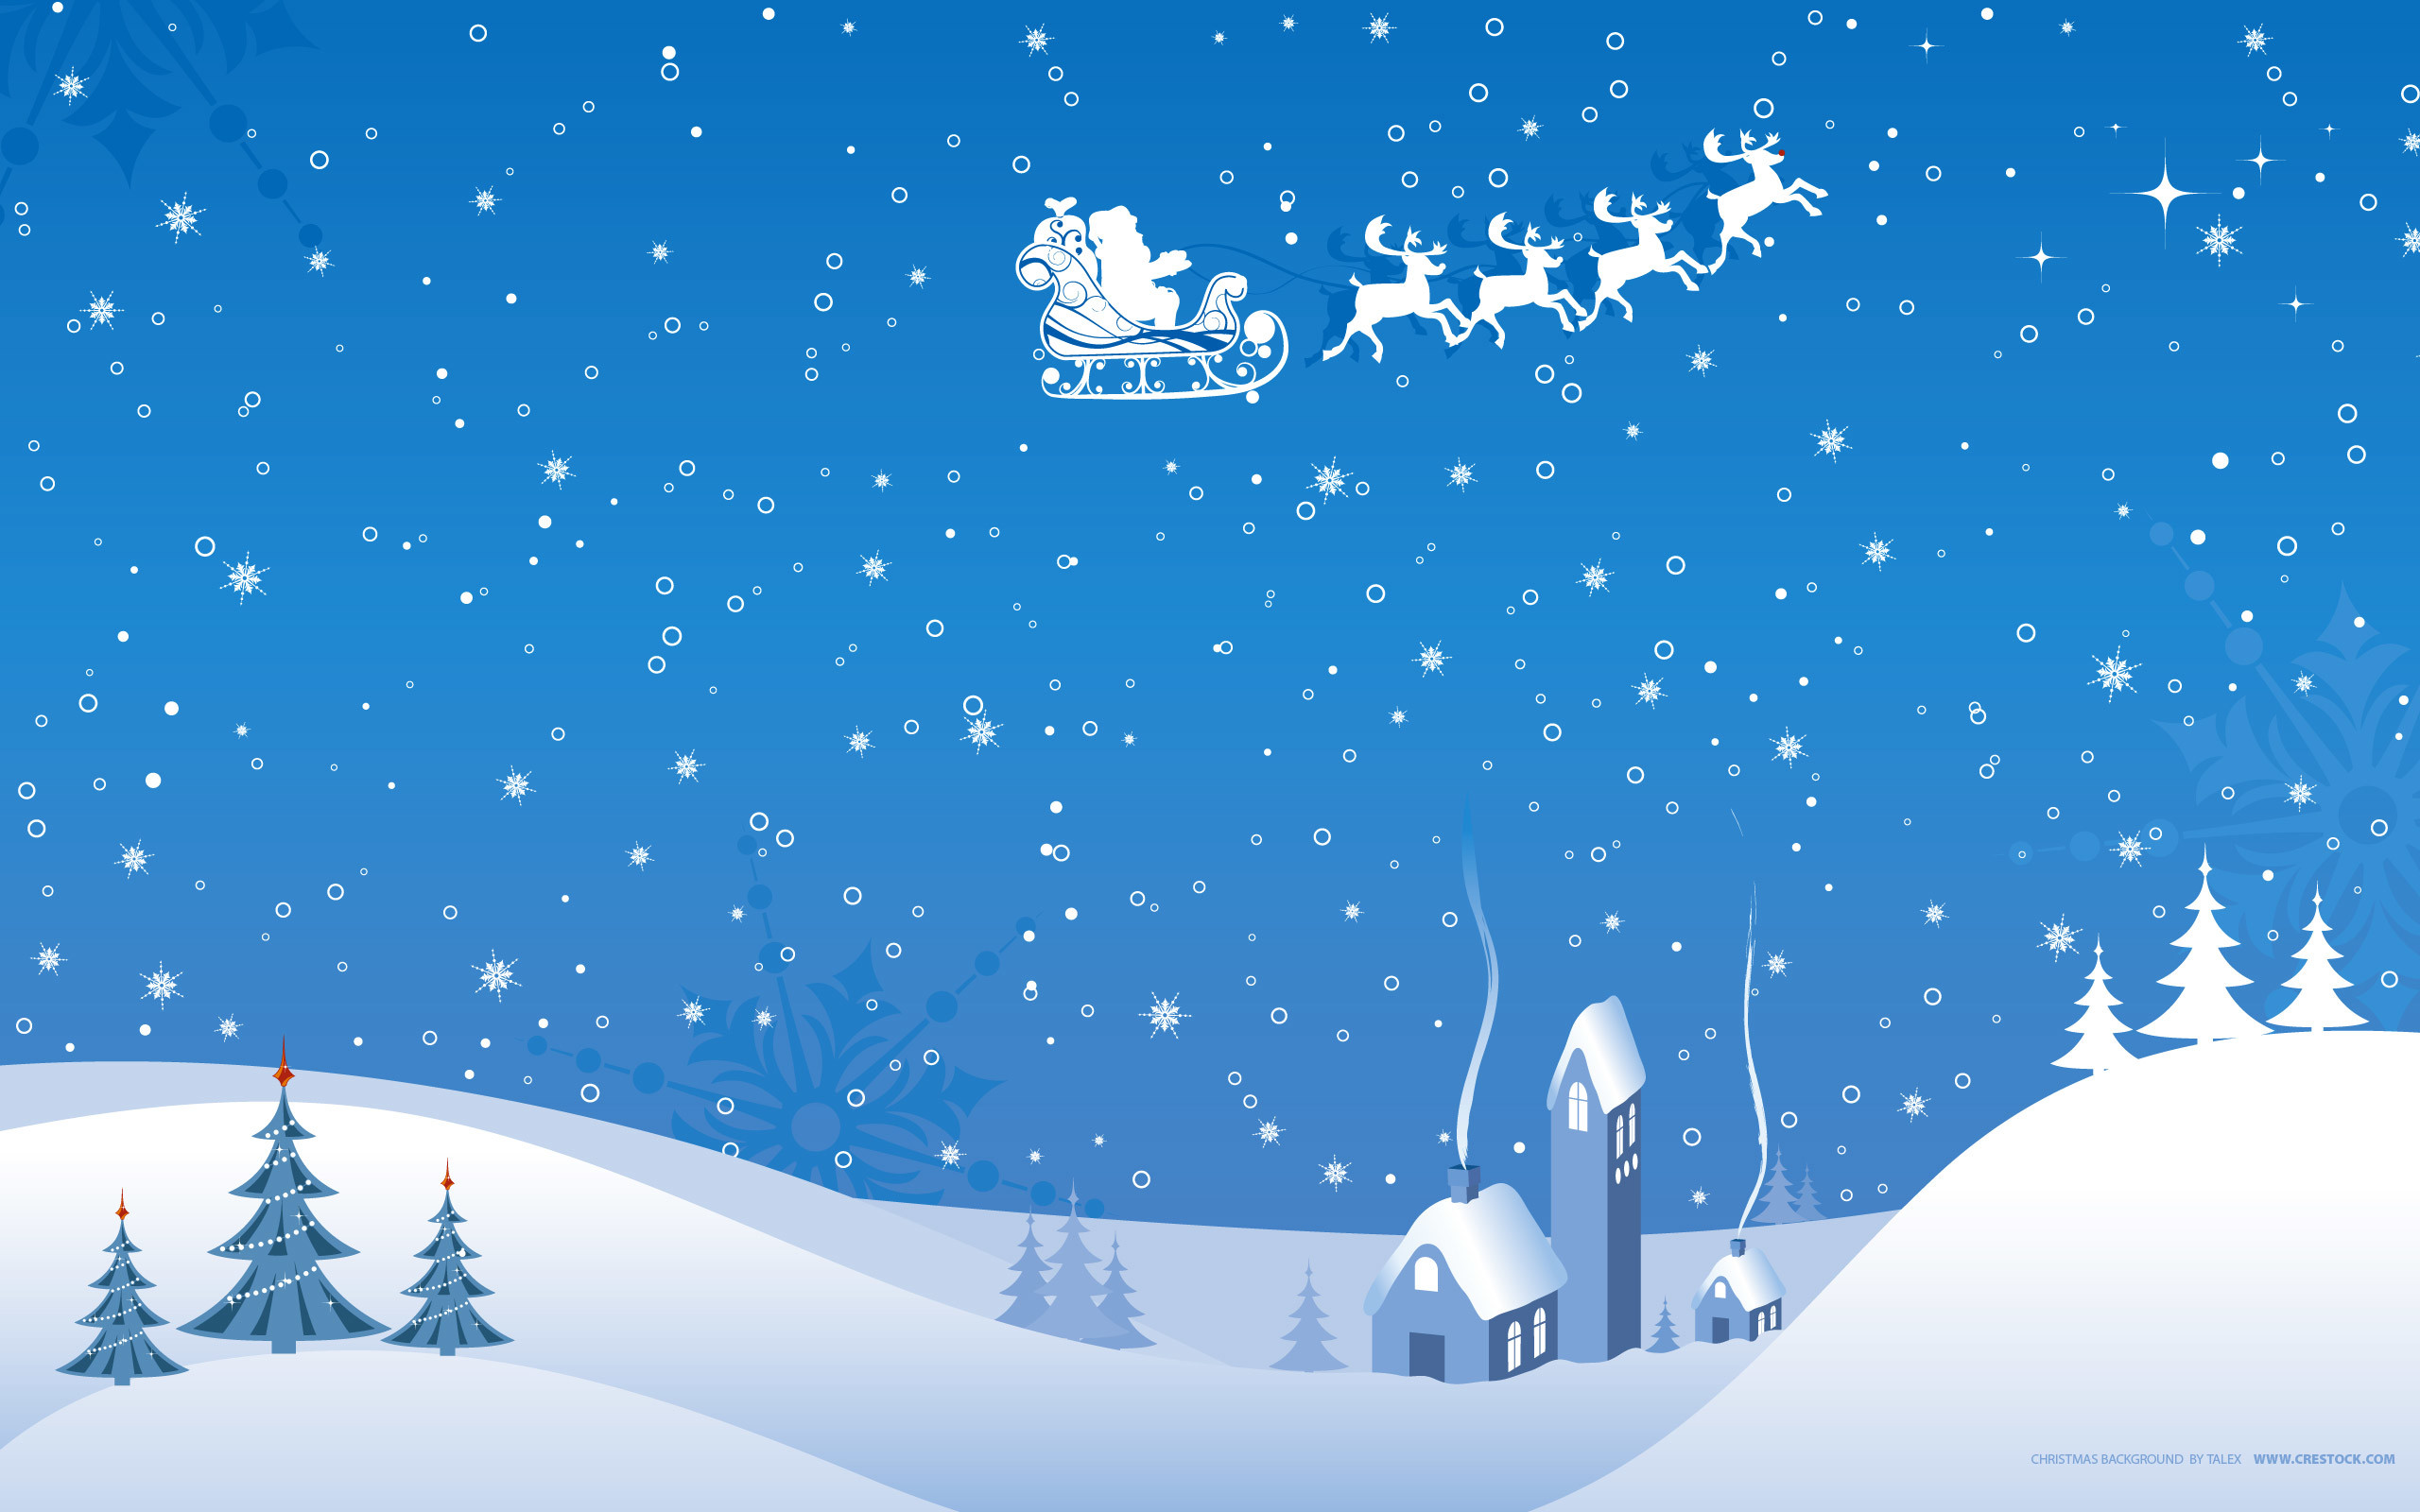 Christmas Backgrounds Hd.3d Christmas Backgrounds Wallpapertag